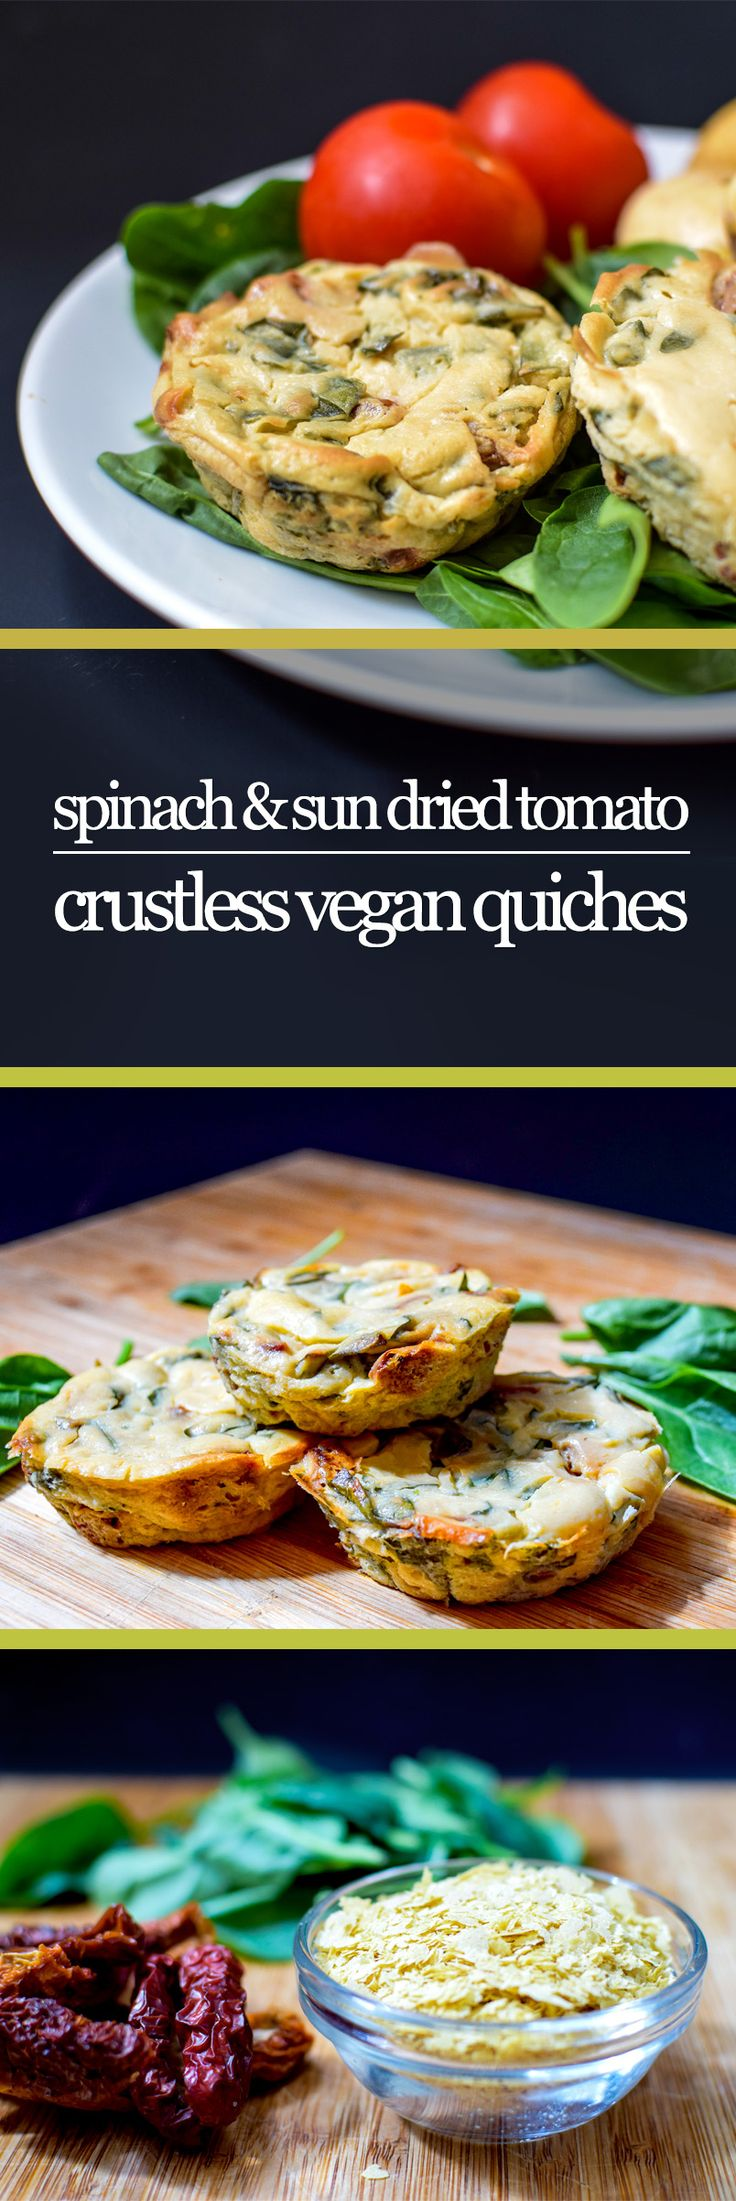 Perfect lunchbox fillers or finger food for picnics - these vegan, gluten free crustless mini quiches are packed with flavour from sun dried tomatoes, and protein from simple blended silken tofu!